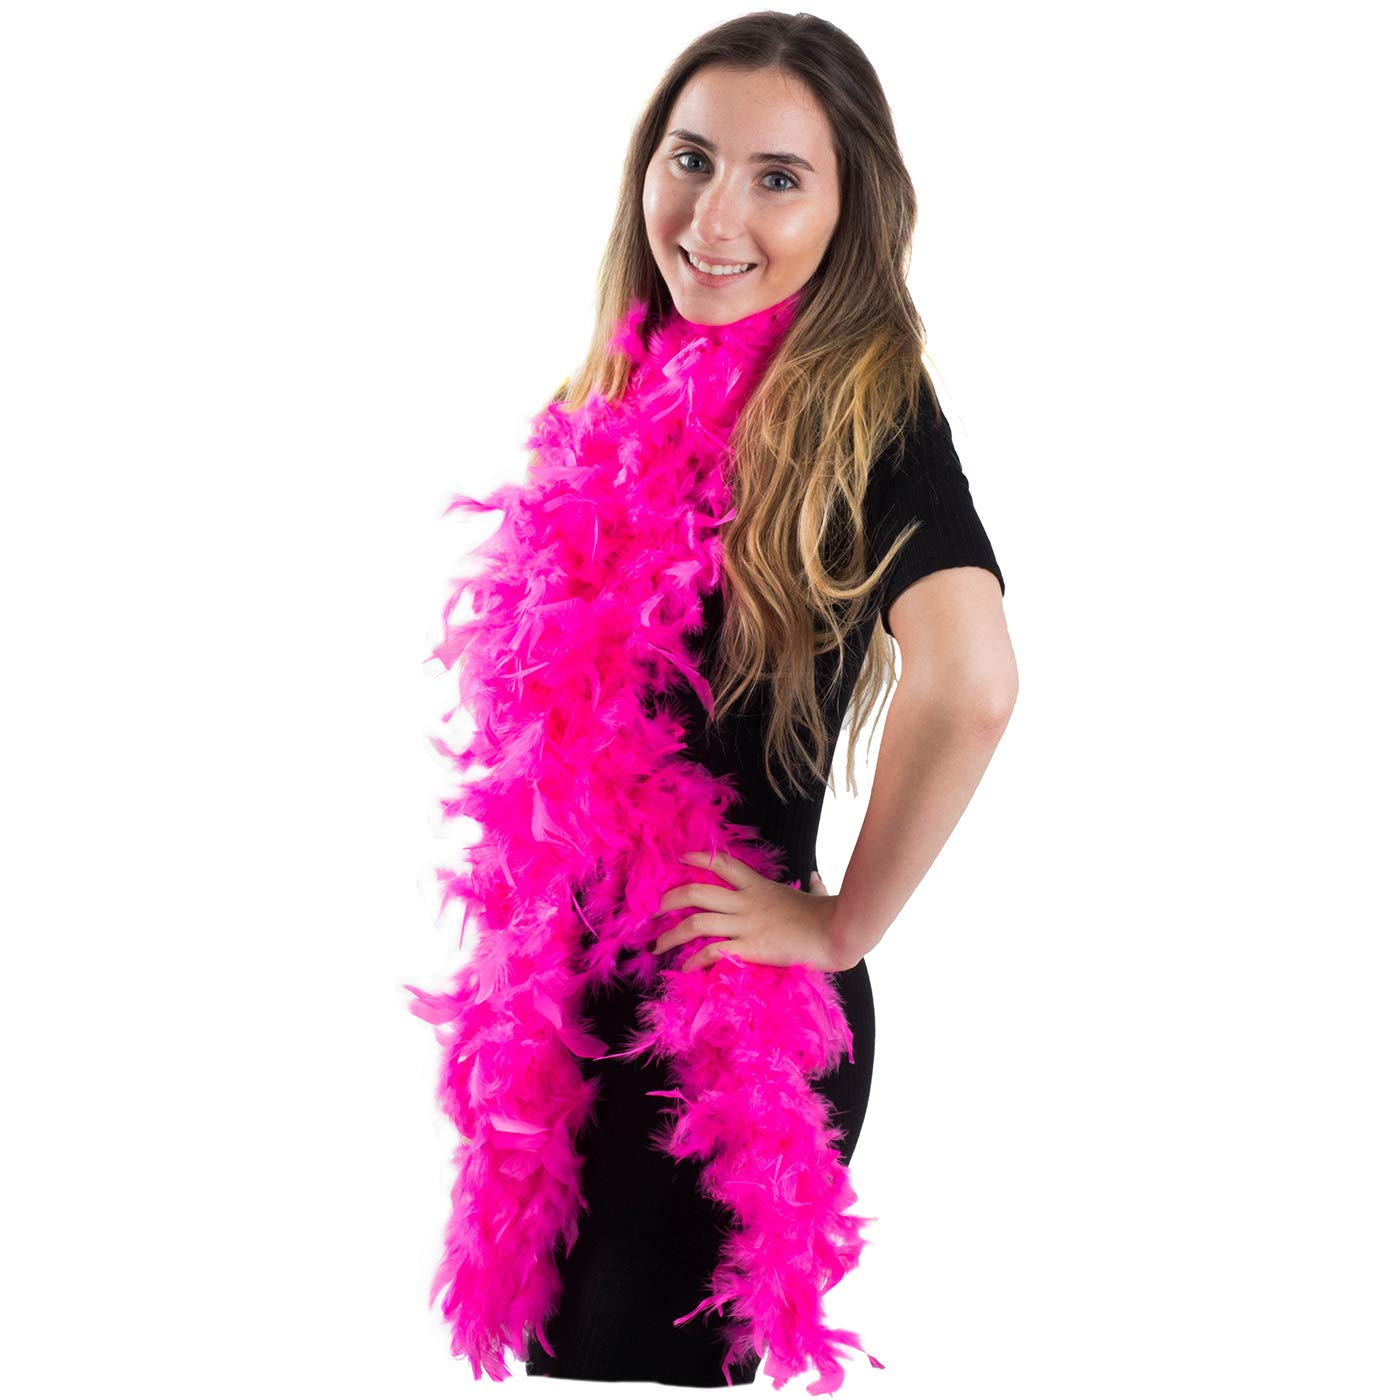 Feather Boa - Marabou Feather Boa – Flapper Accessories – Diva Dress Up - By Funny Party Hats